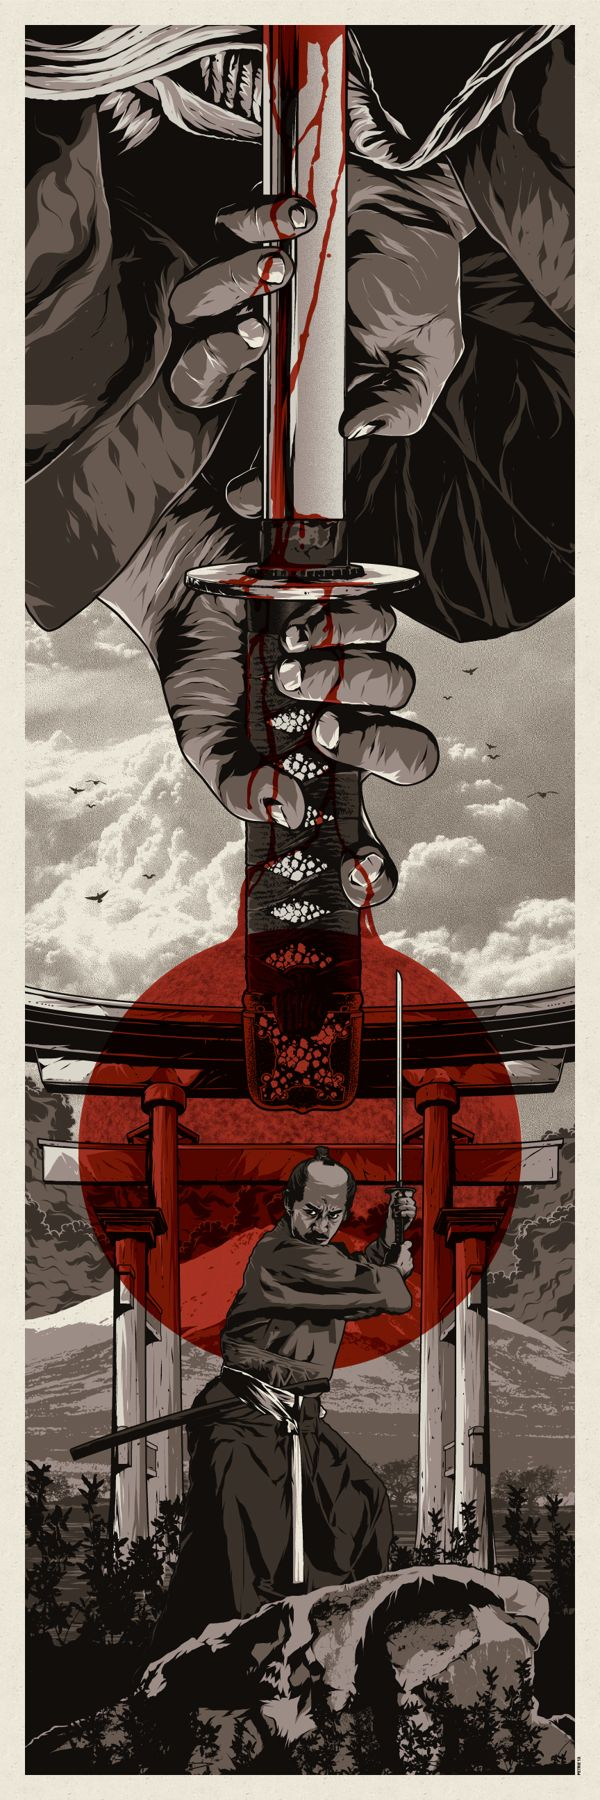 A Warrior's Dream Part II by Anthony Petrie, via Behance